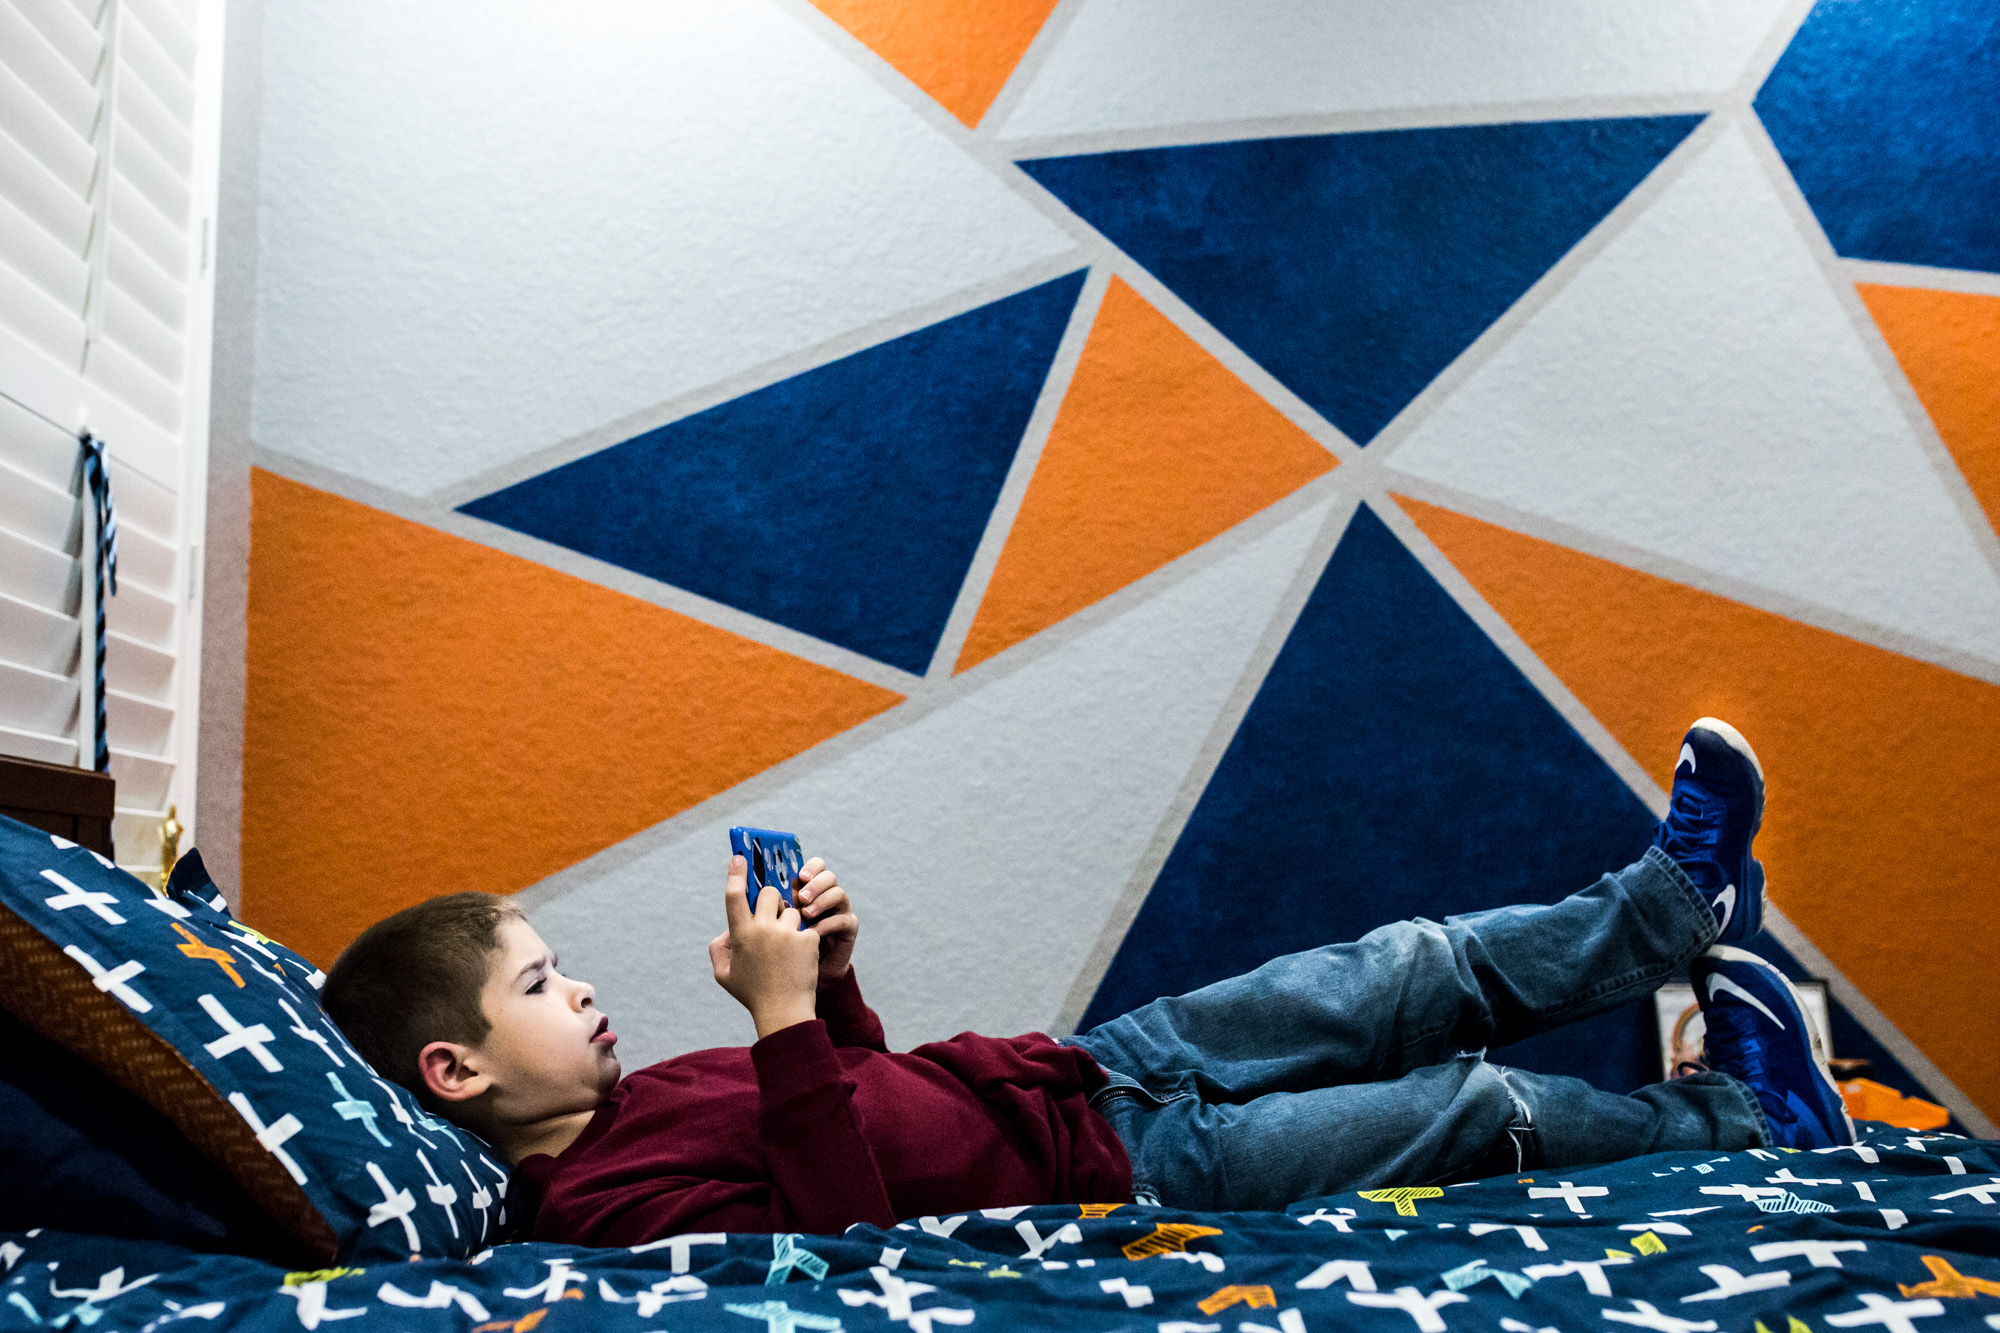 Lawren Rose Photography takes an environmental portrait of a young boy in his room playing a video game